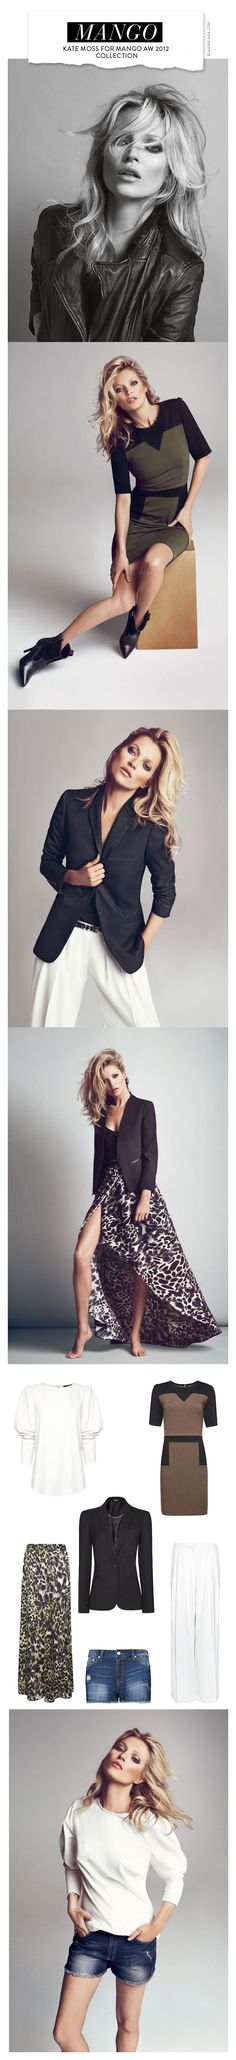 Kate Moss for Mango AW 2012 Collection